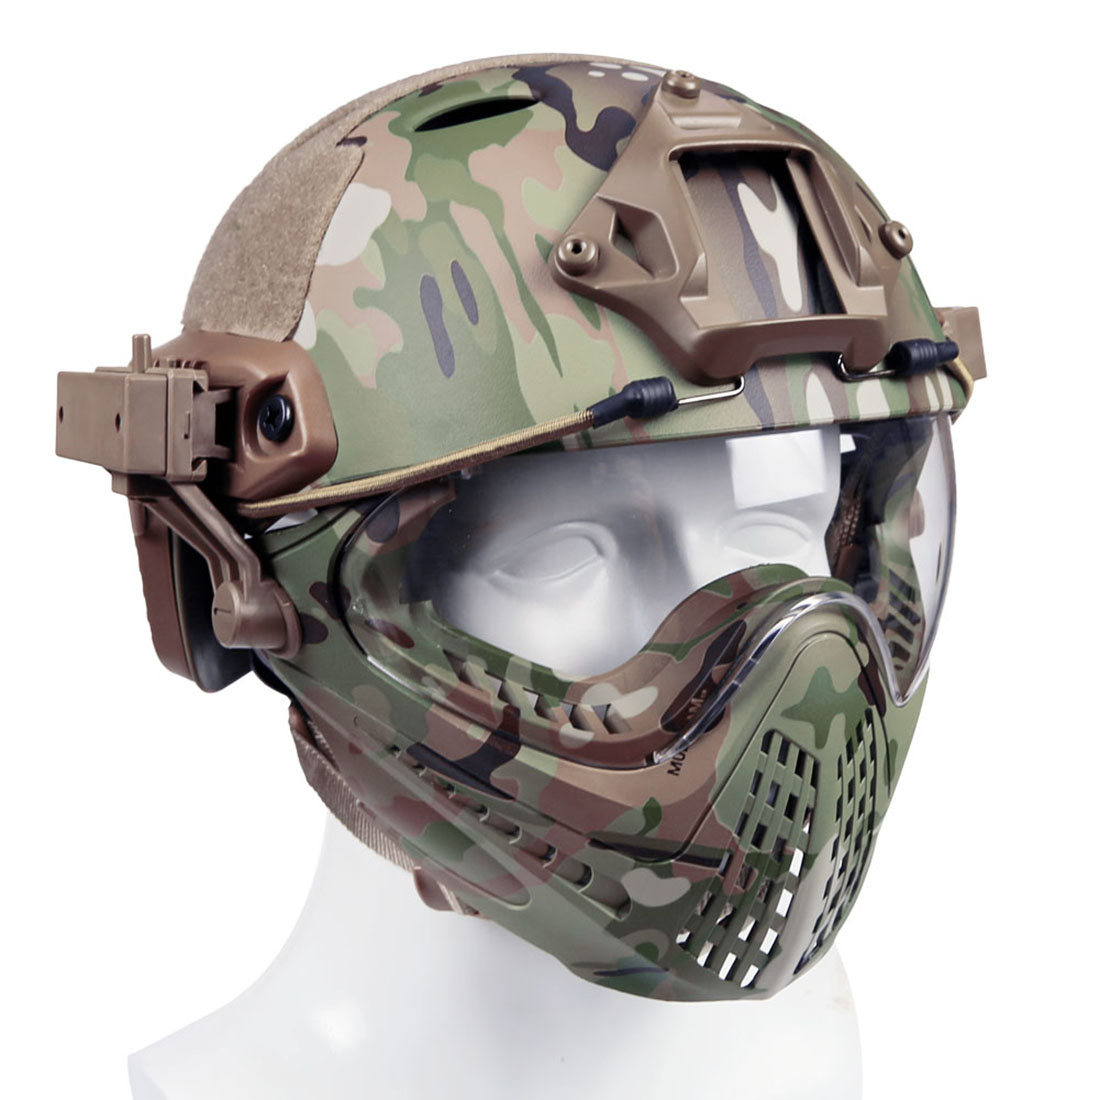 WST Navigator MH Updated Version Fast Tactical Helmet Combined With Foldable Half Face Mesh Mask And Goggles For CS Game Set